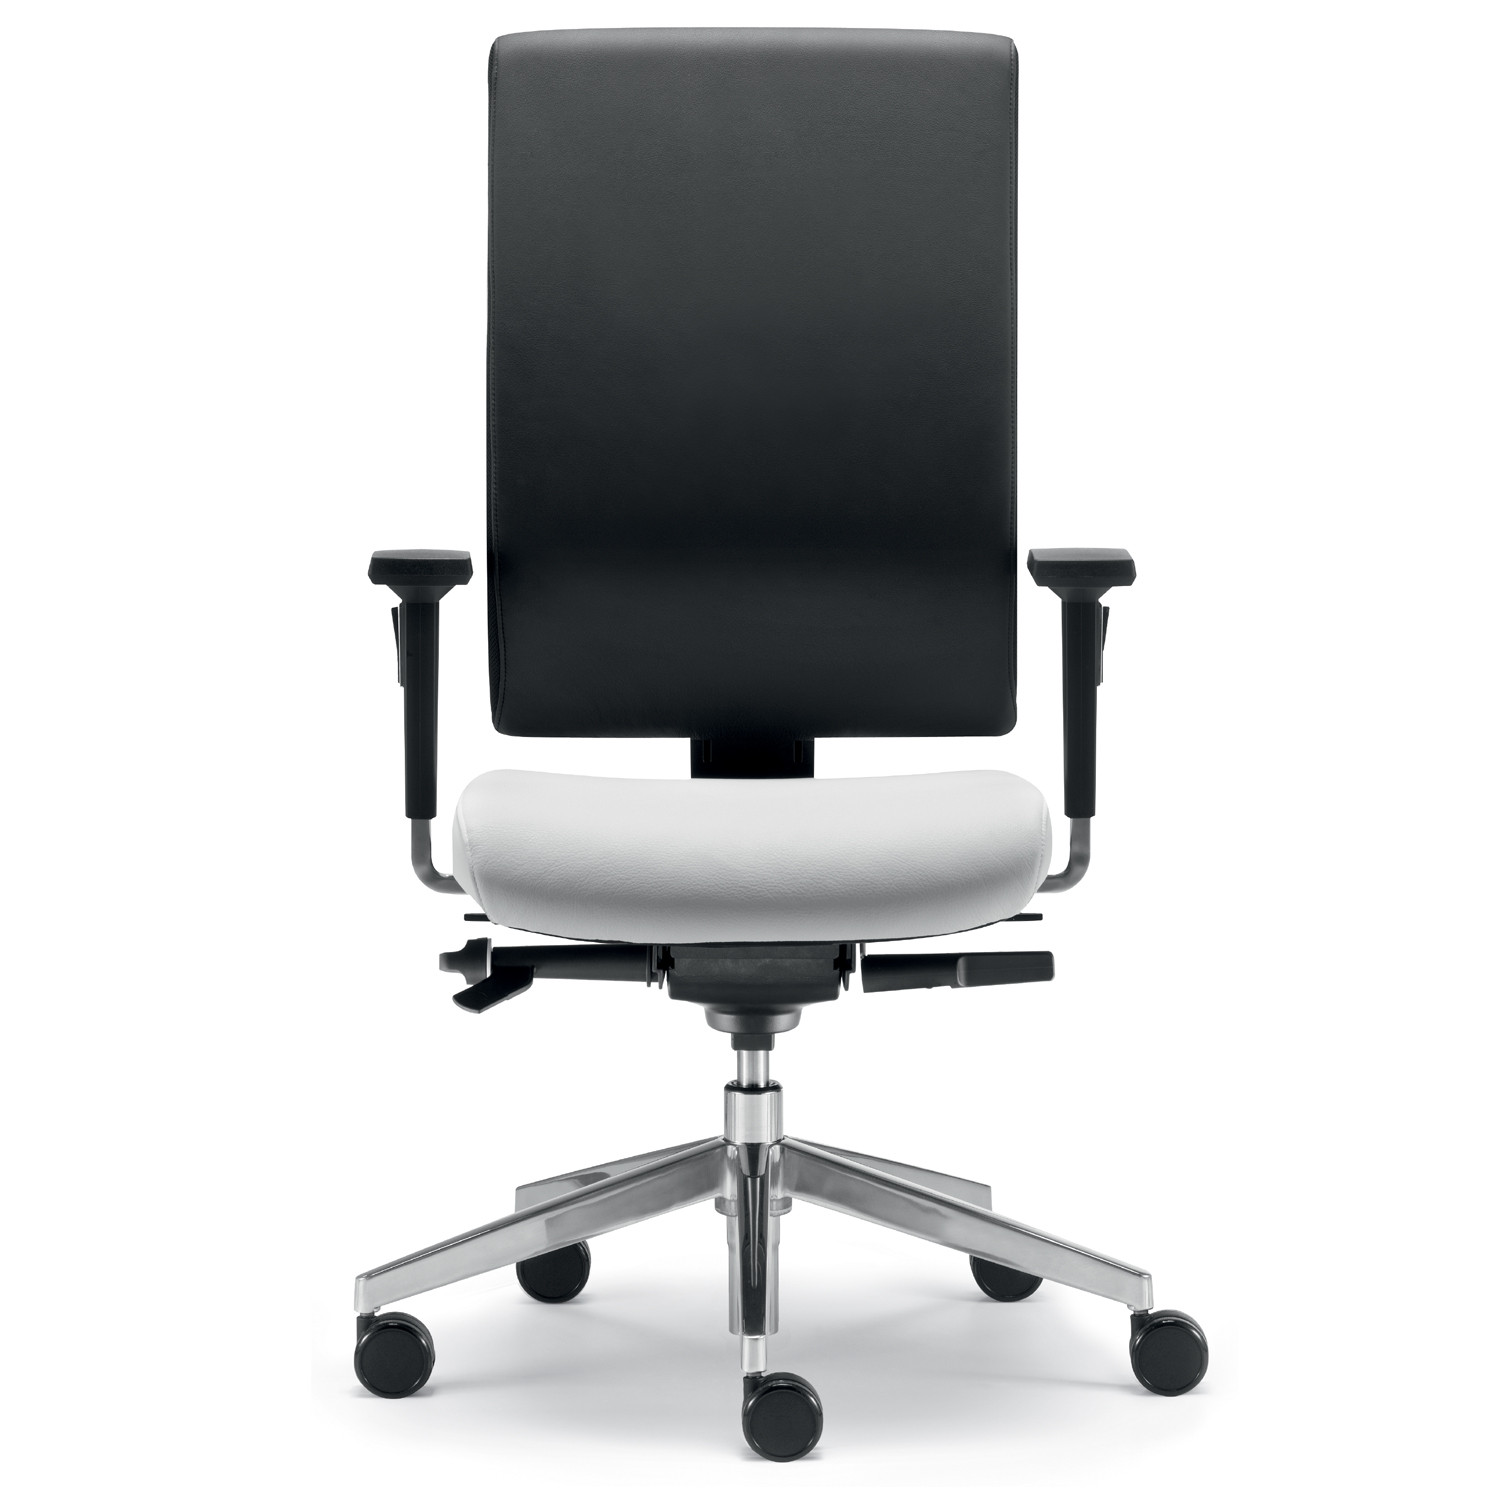 TakeOver Ergonomic Office Chair